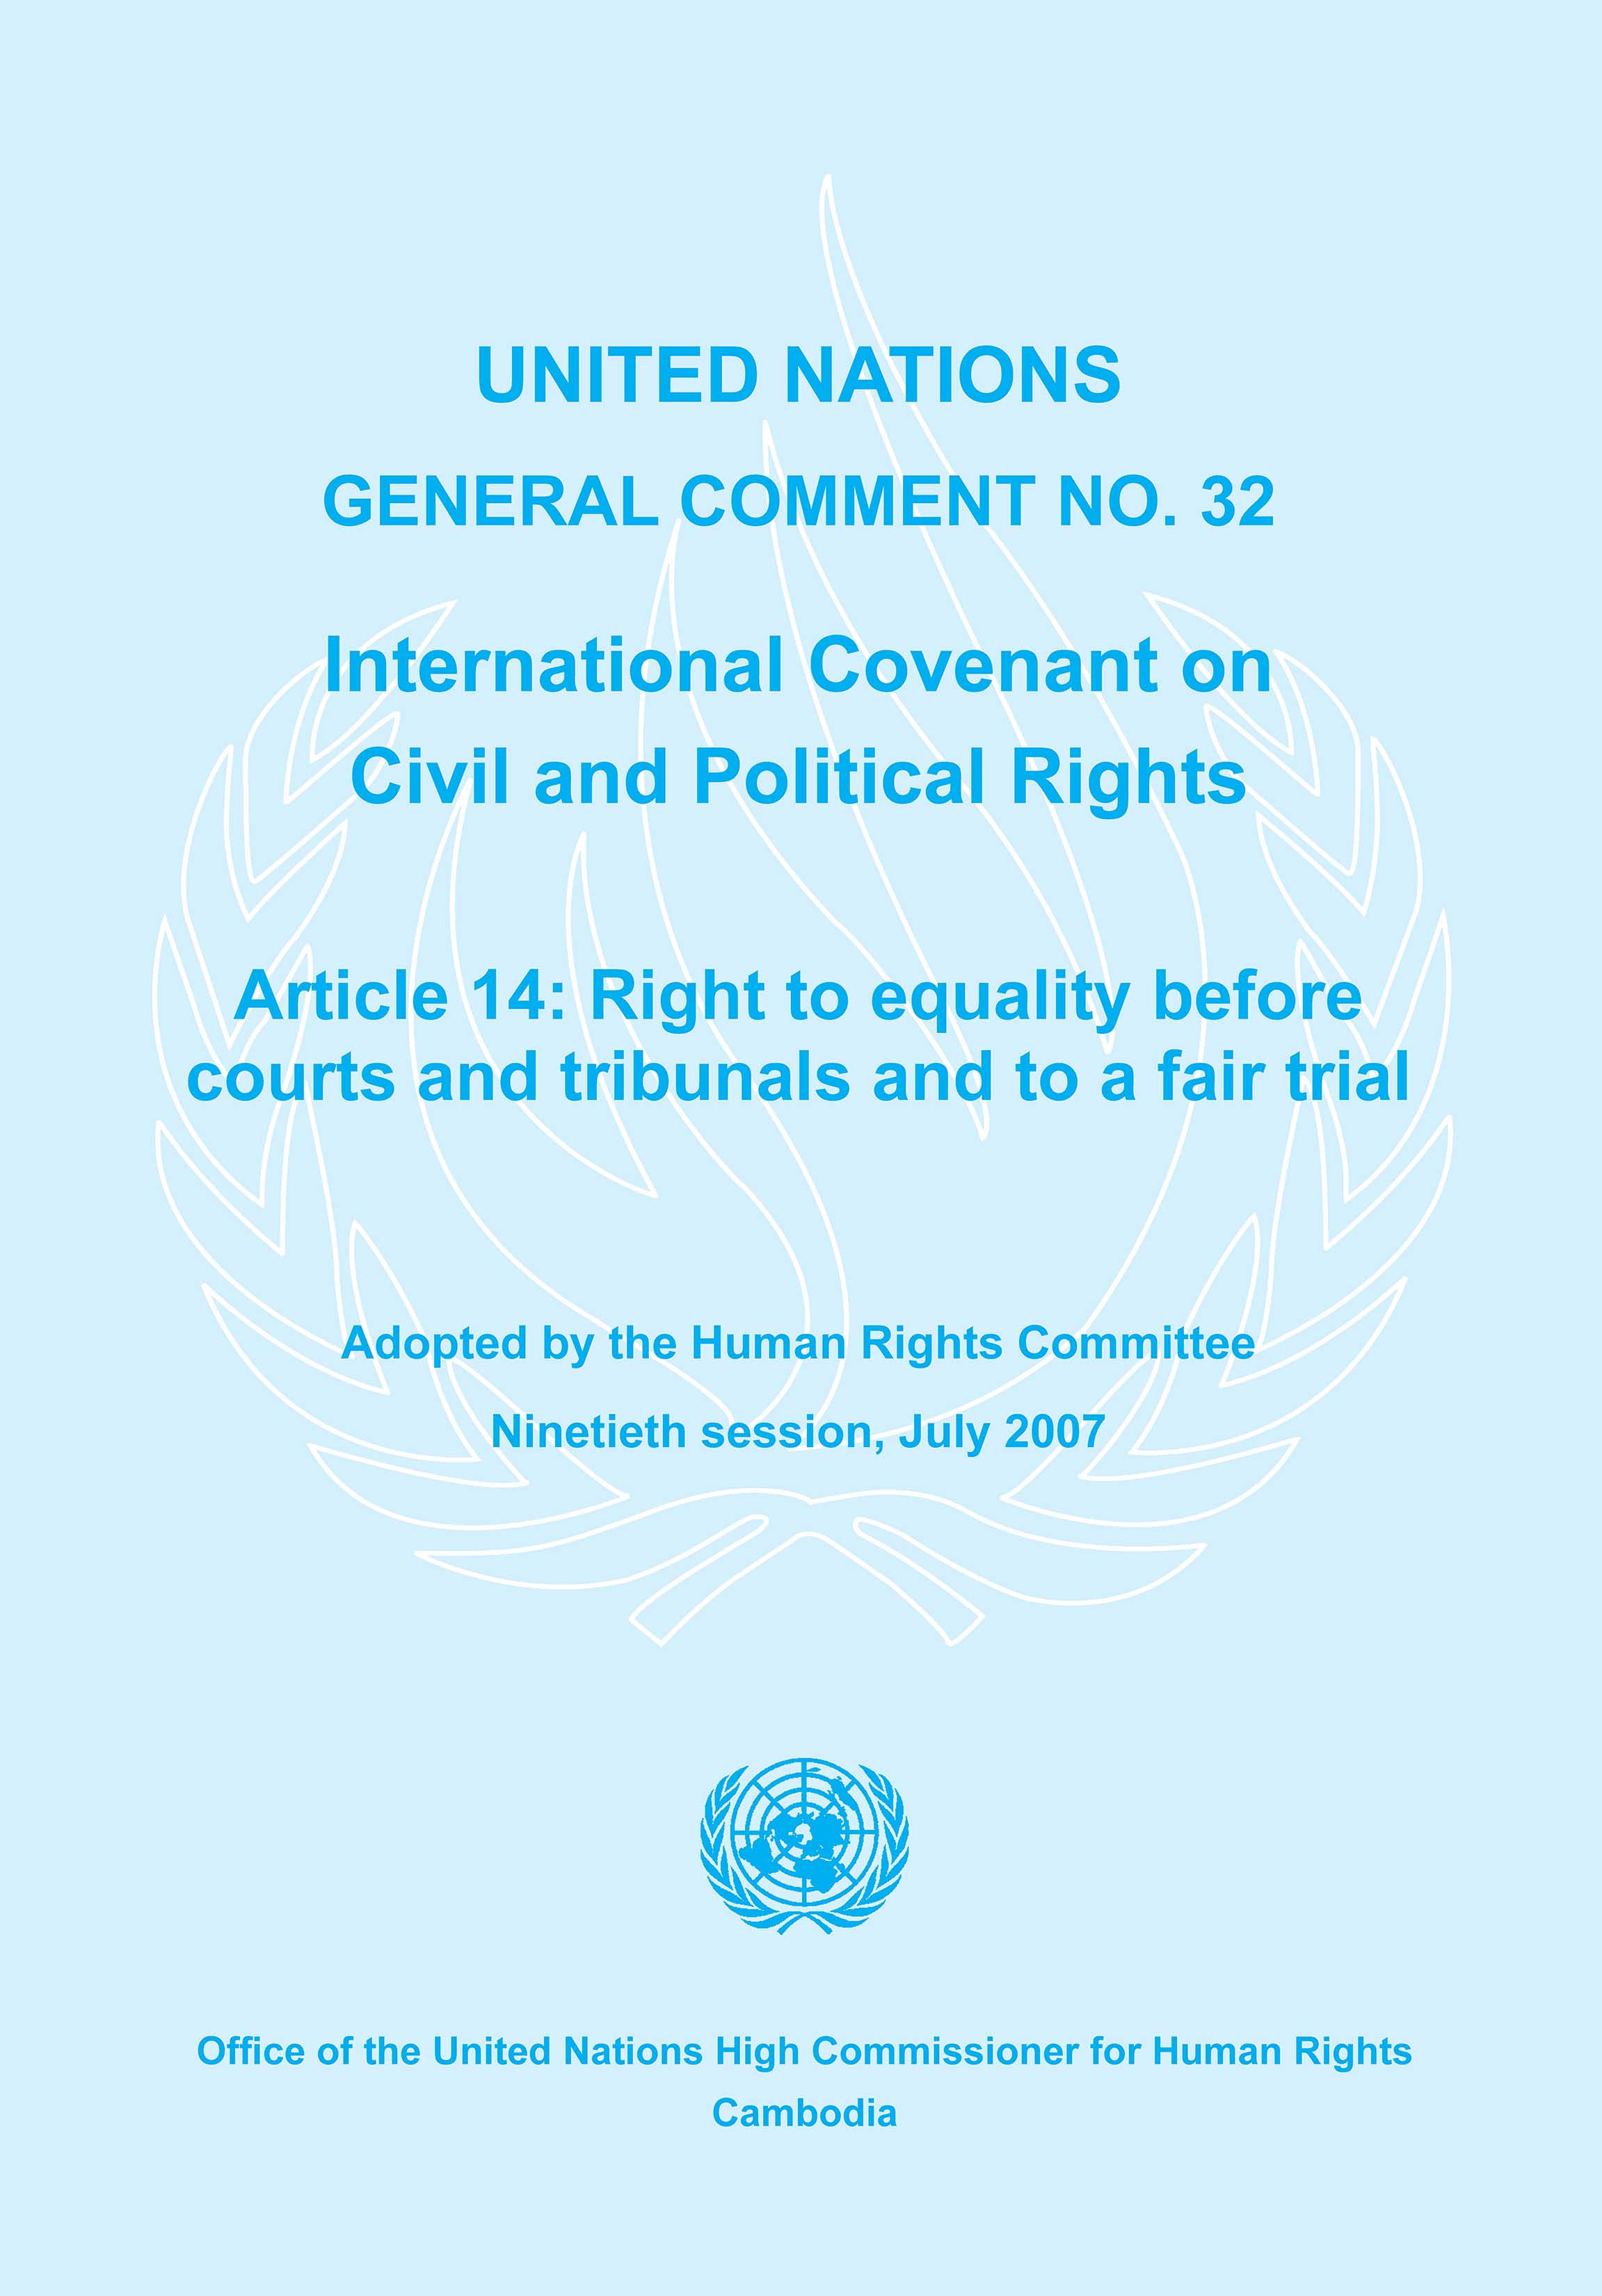 General Comment No 32 of the Human Rights Committee, on Right to Equality before courts and tribunals and to a Fair Trial